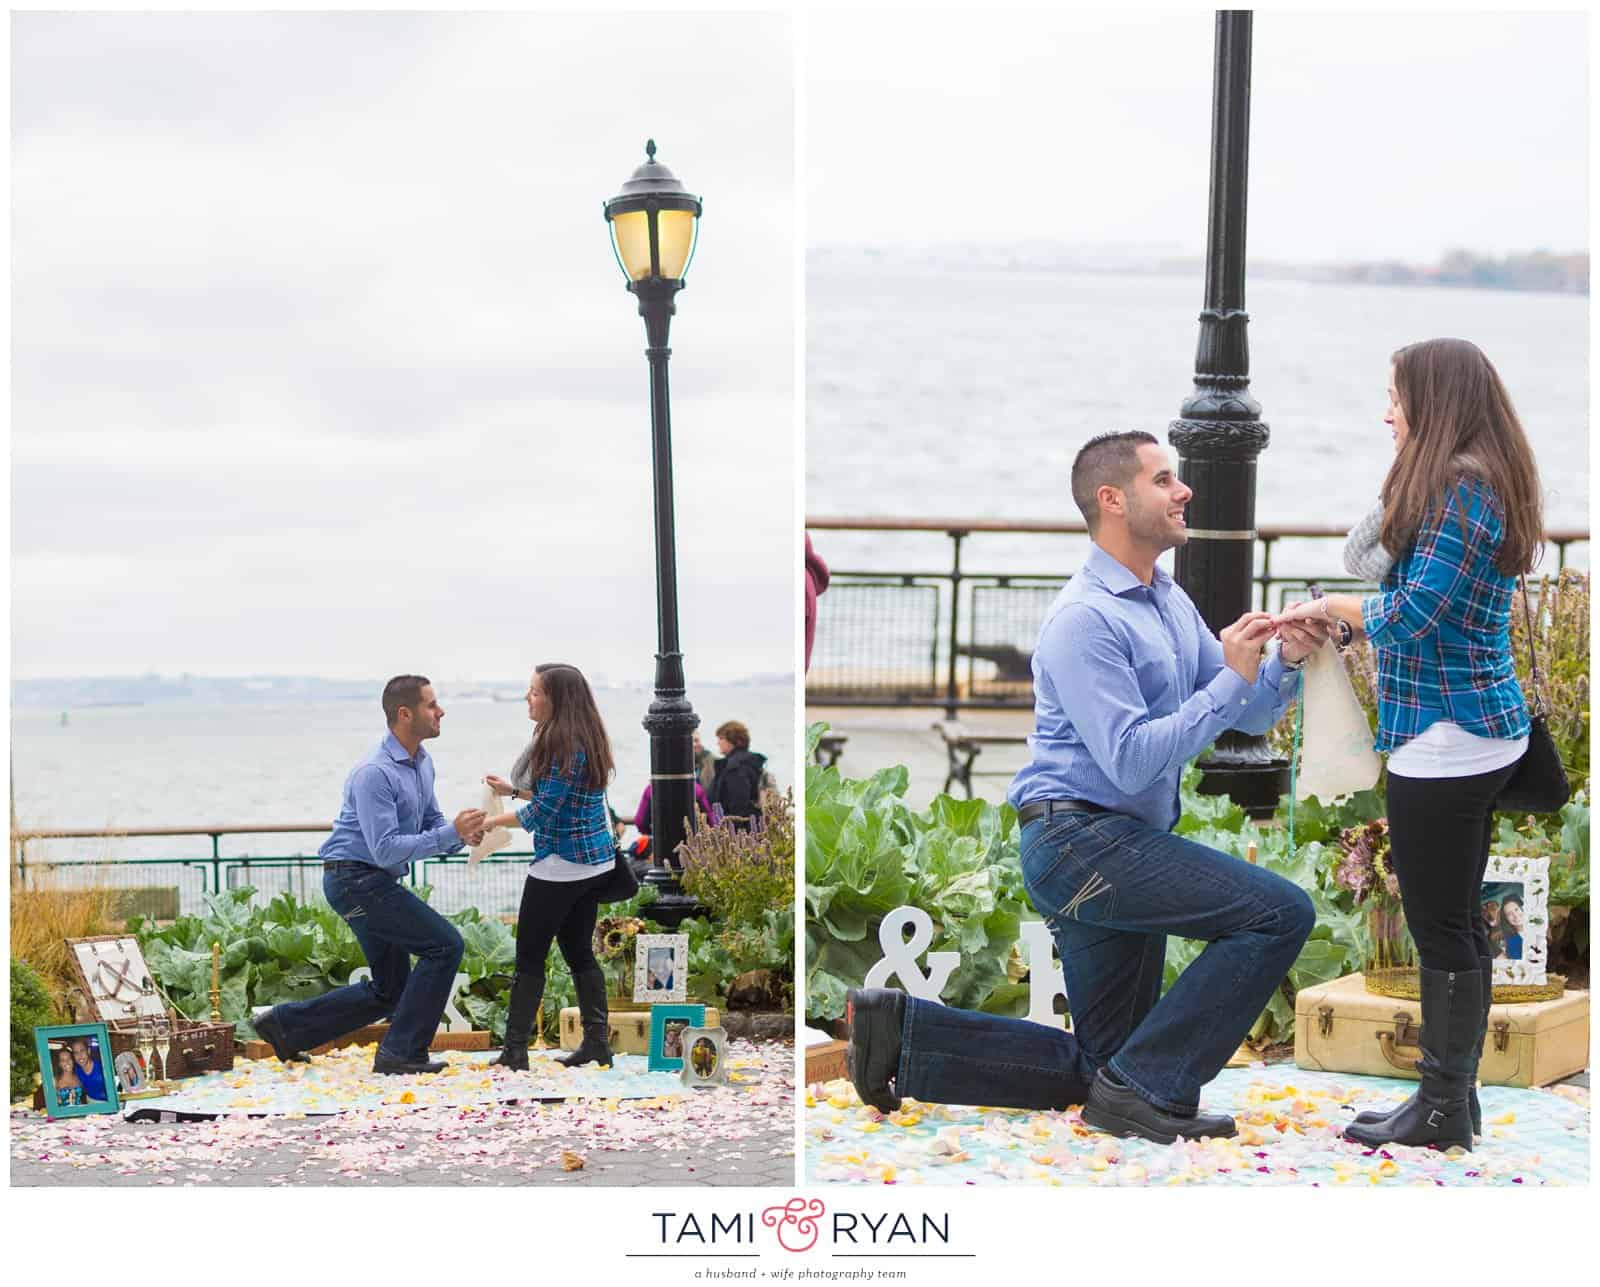 Rocco-Kait-New-York-City-Battery-Park-Proposal-Surprise-0025